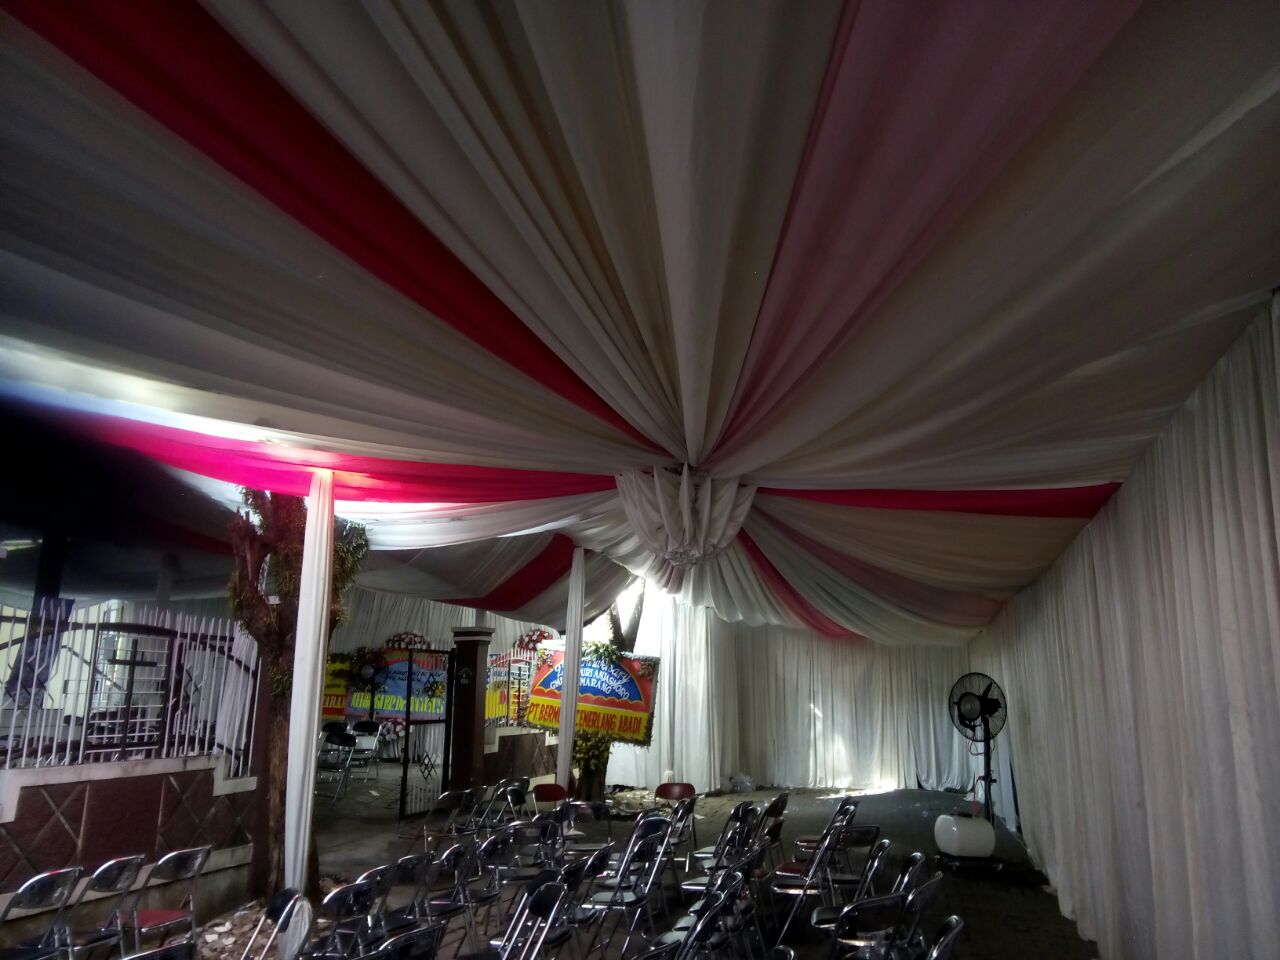 Sewa Tenda Pesta Jogja